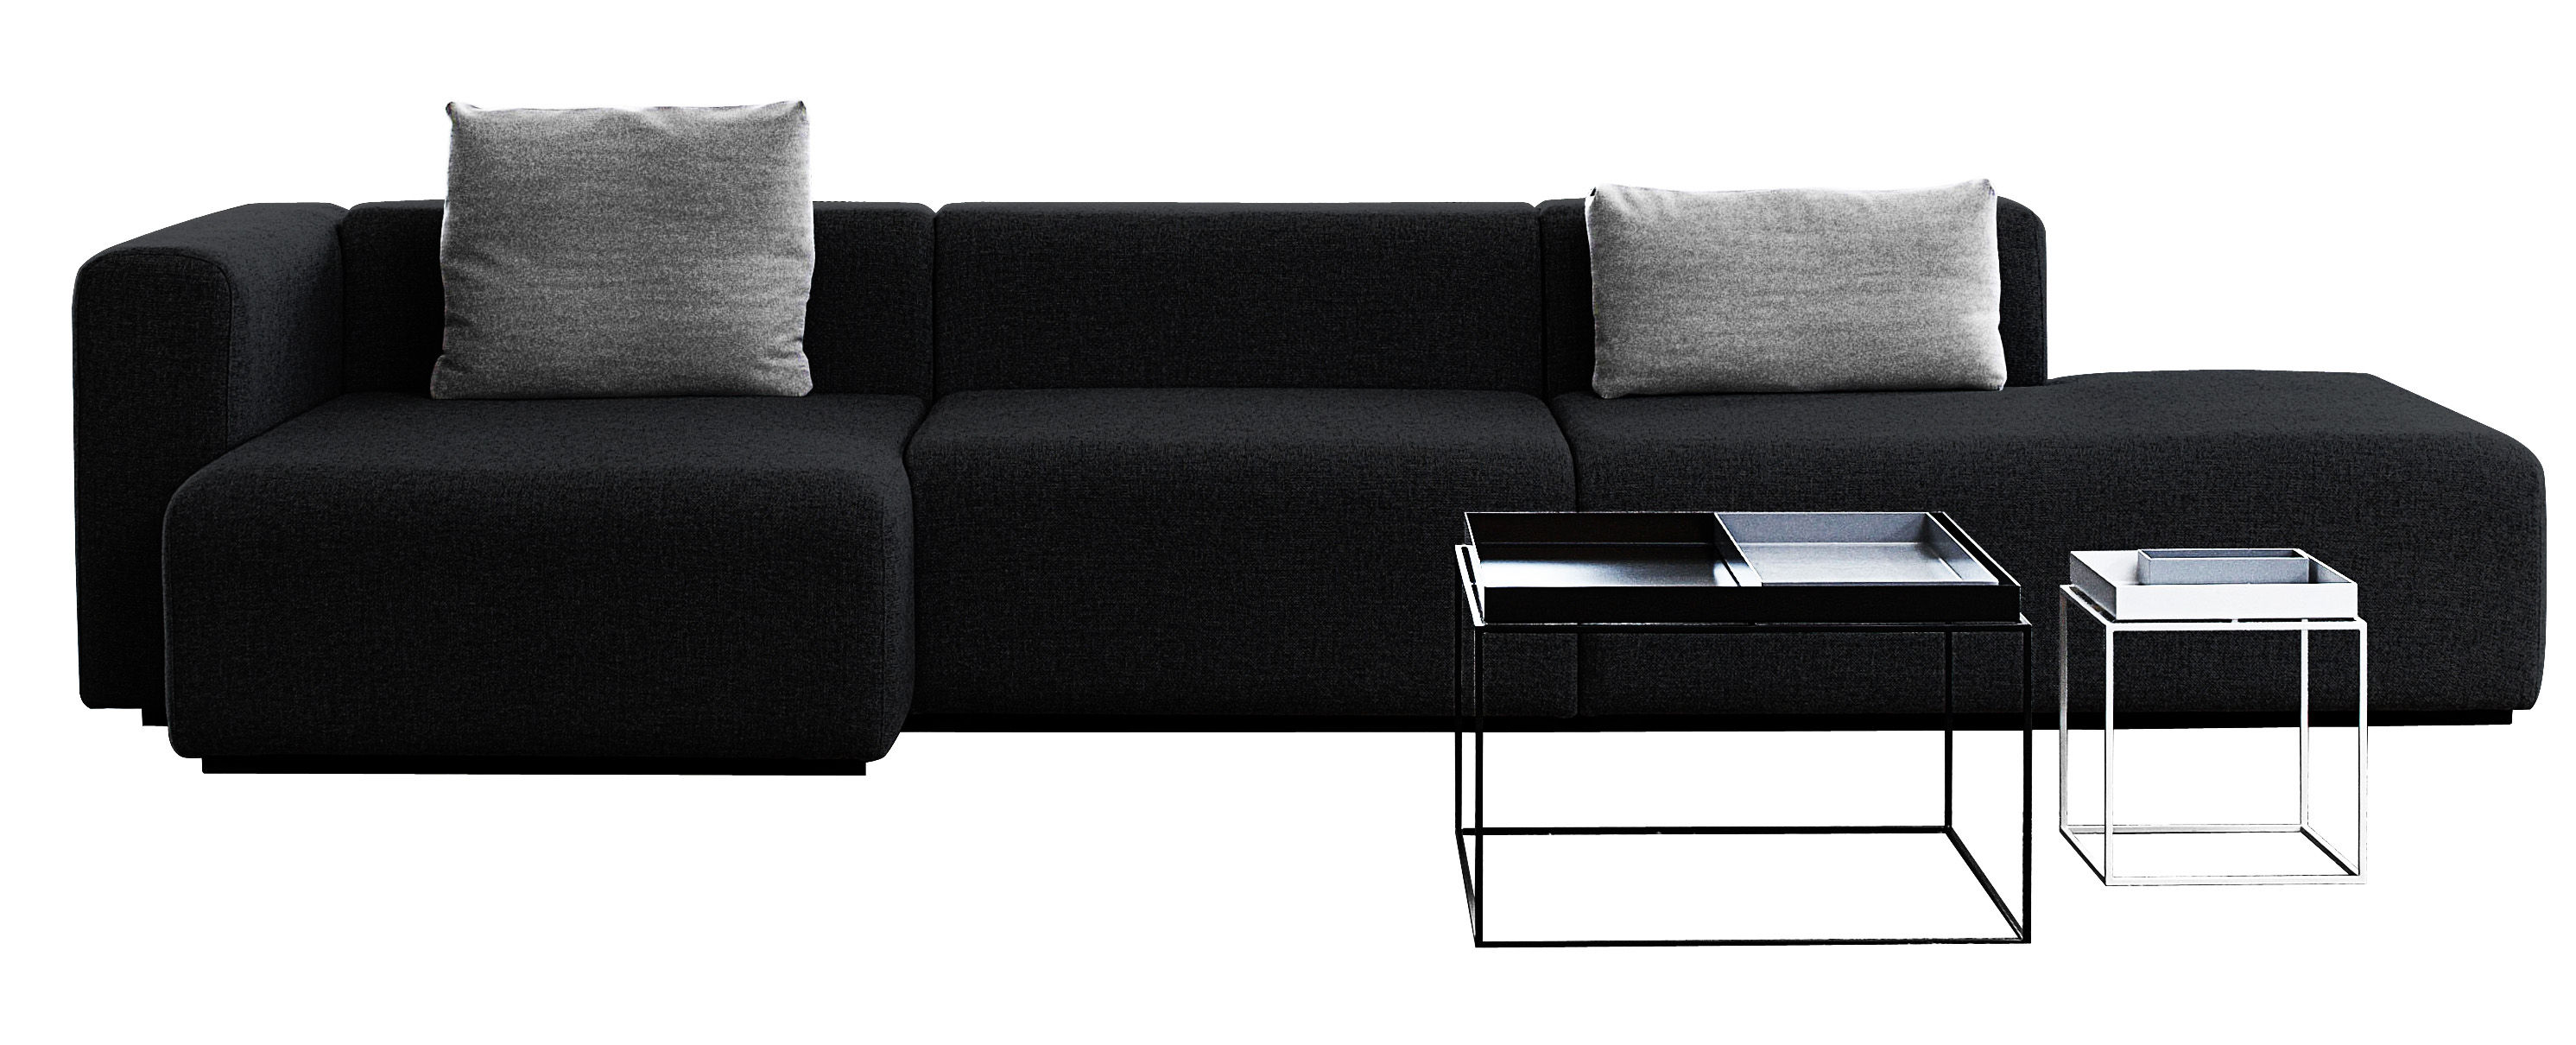 mags corner sofa l 342 cm left armrest dark grey left armrest by hay. Black Bedroom Furniture Sets. Home Design Ideas